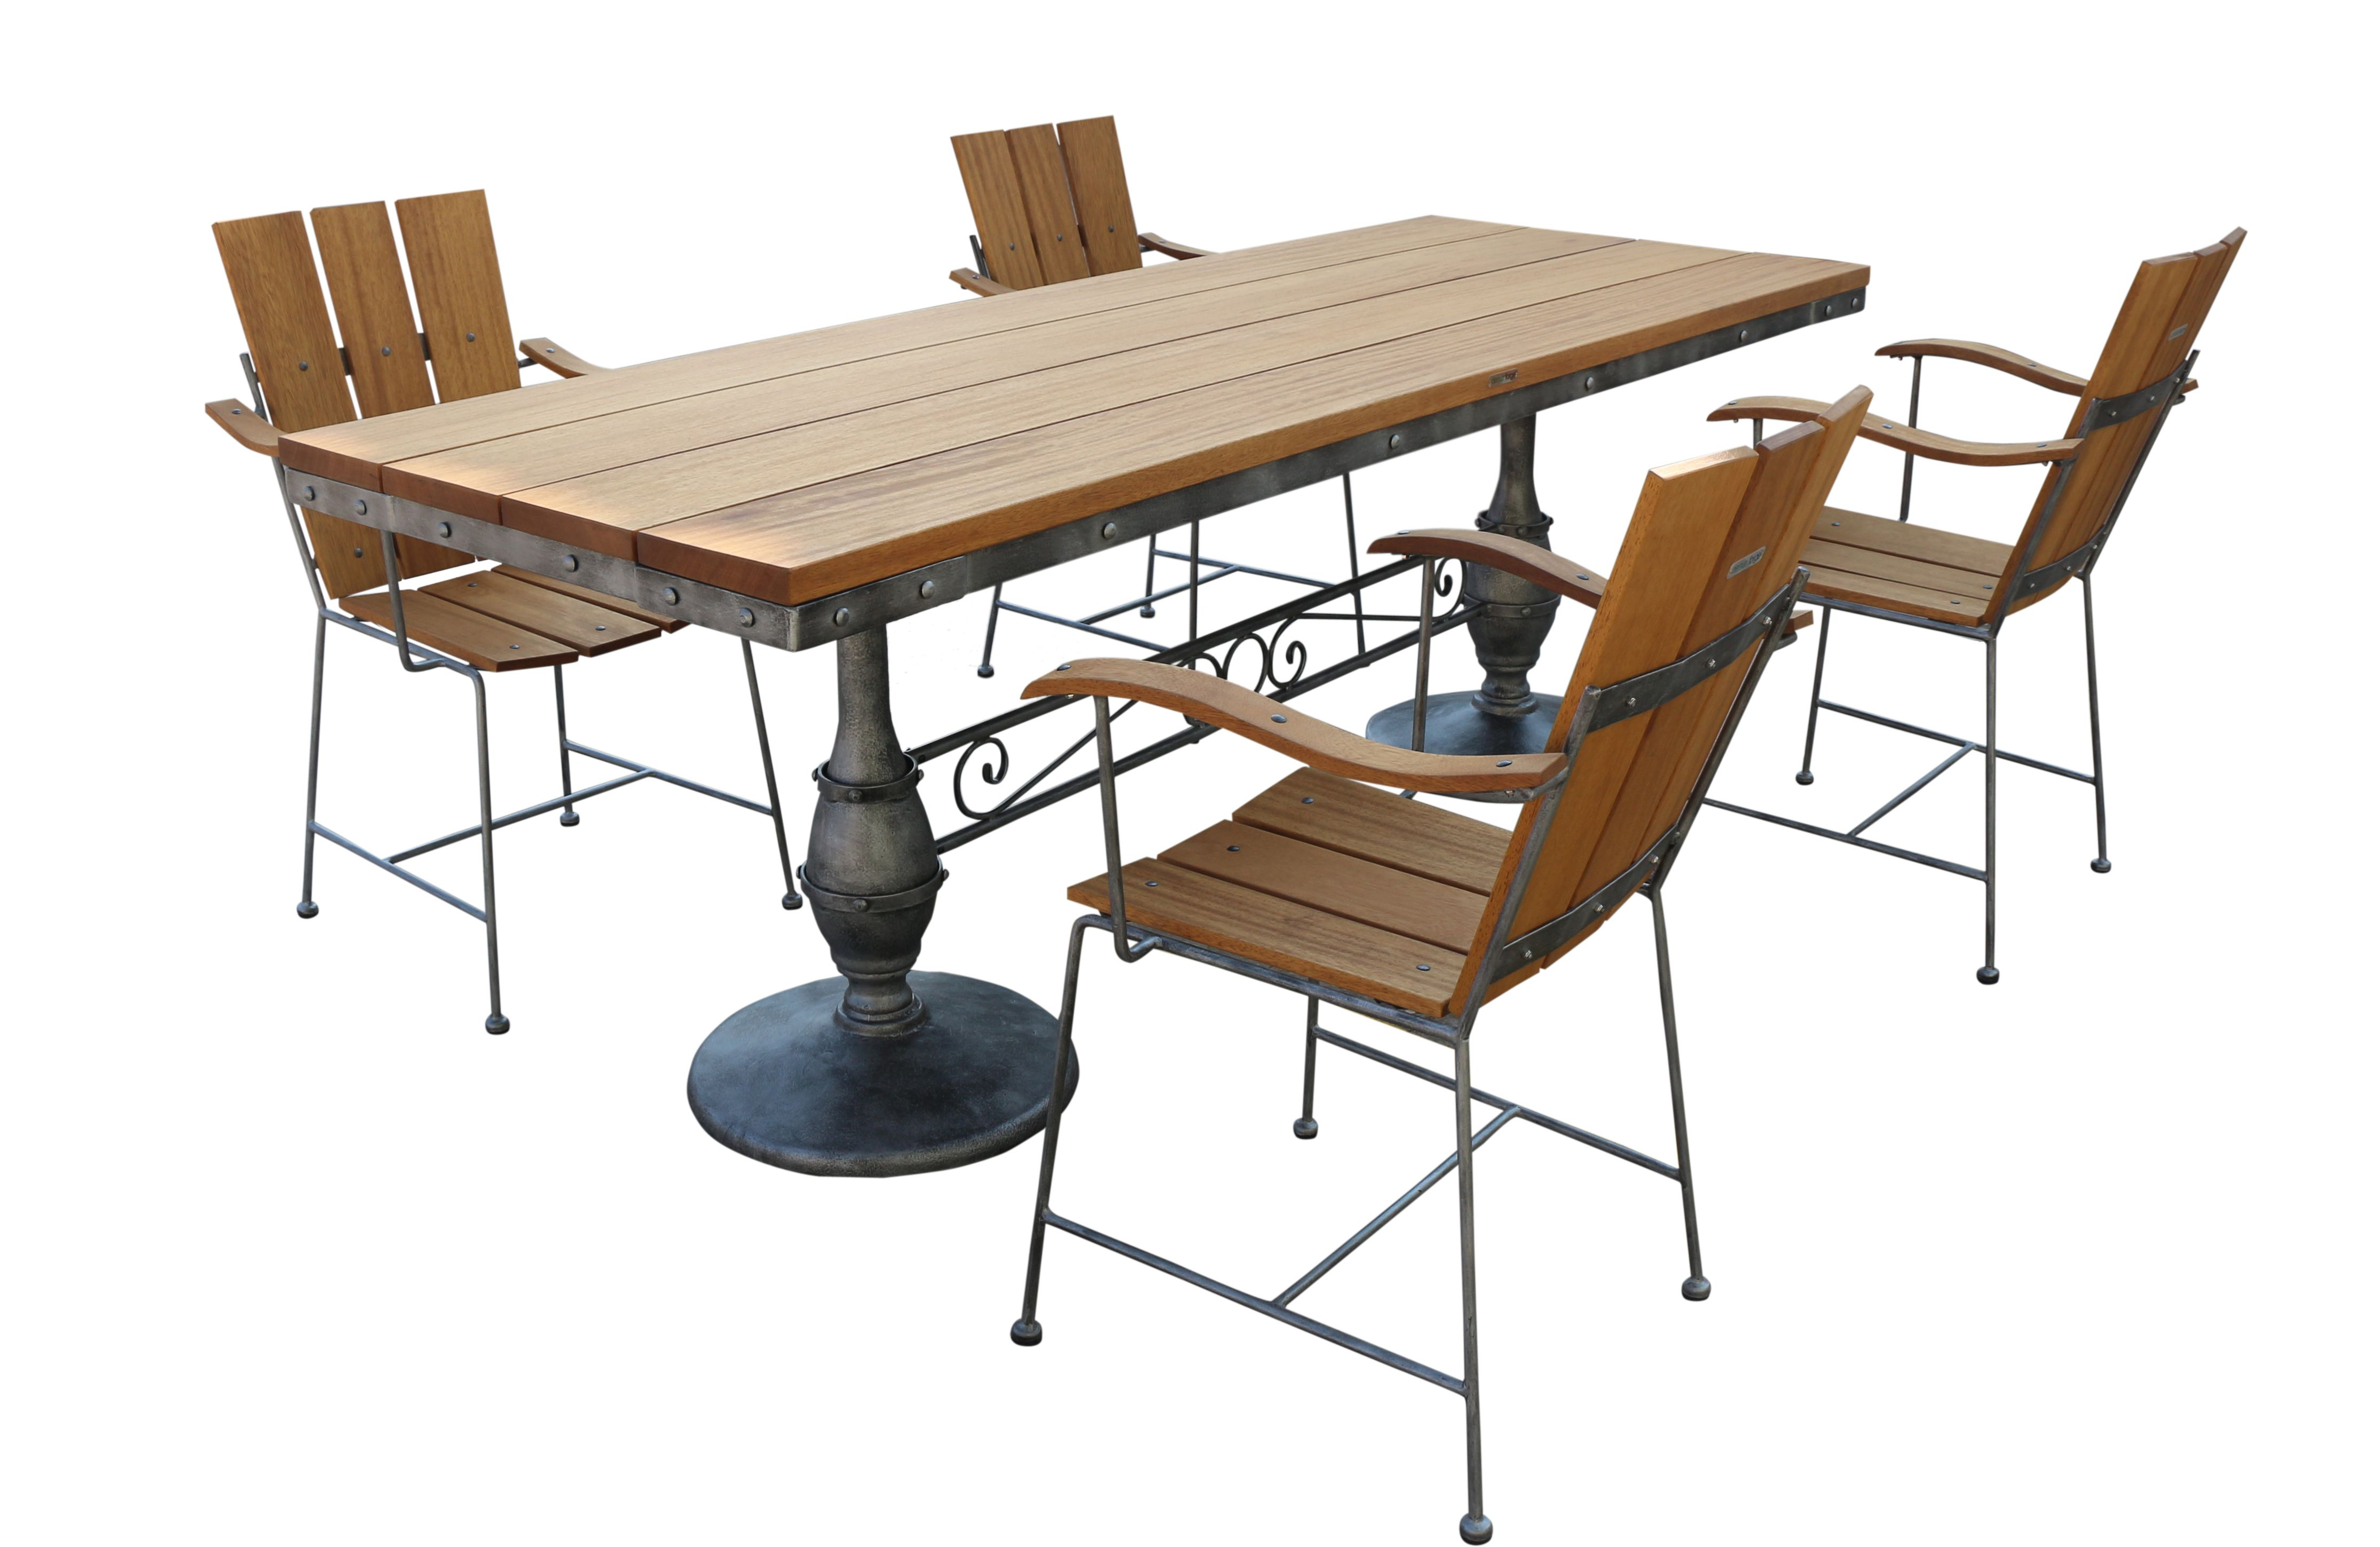 Dining table teak wood top and wrought iron chairs salon jardin fer forge - Table et chaises fer forge ...